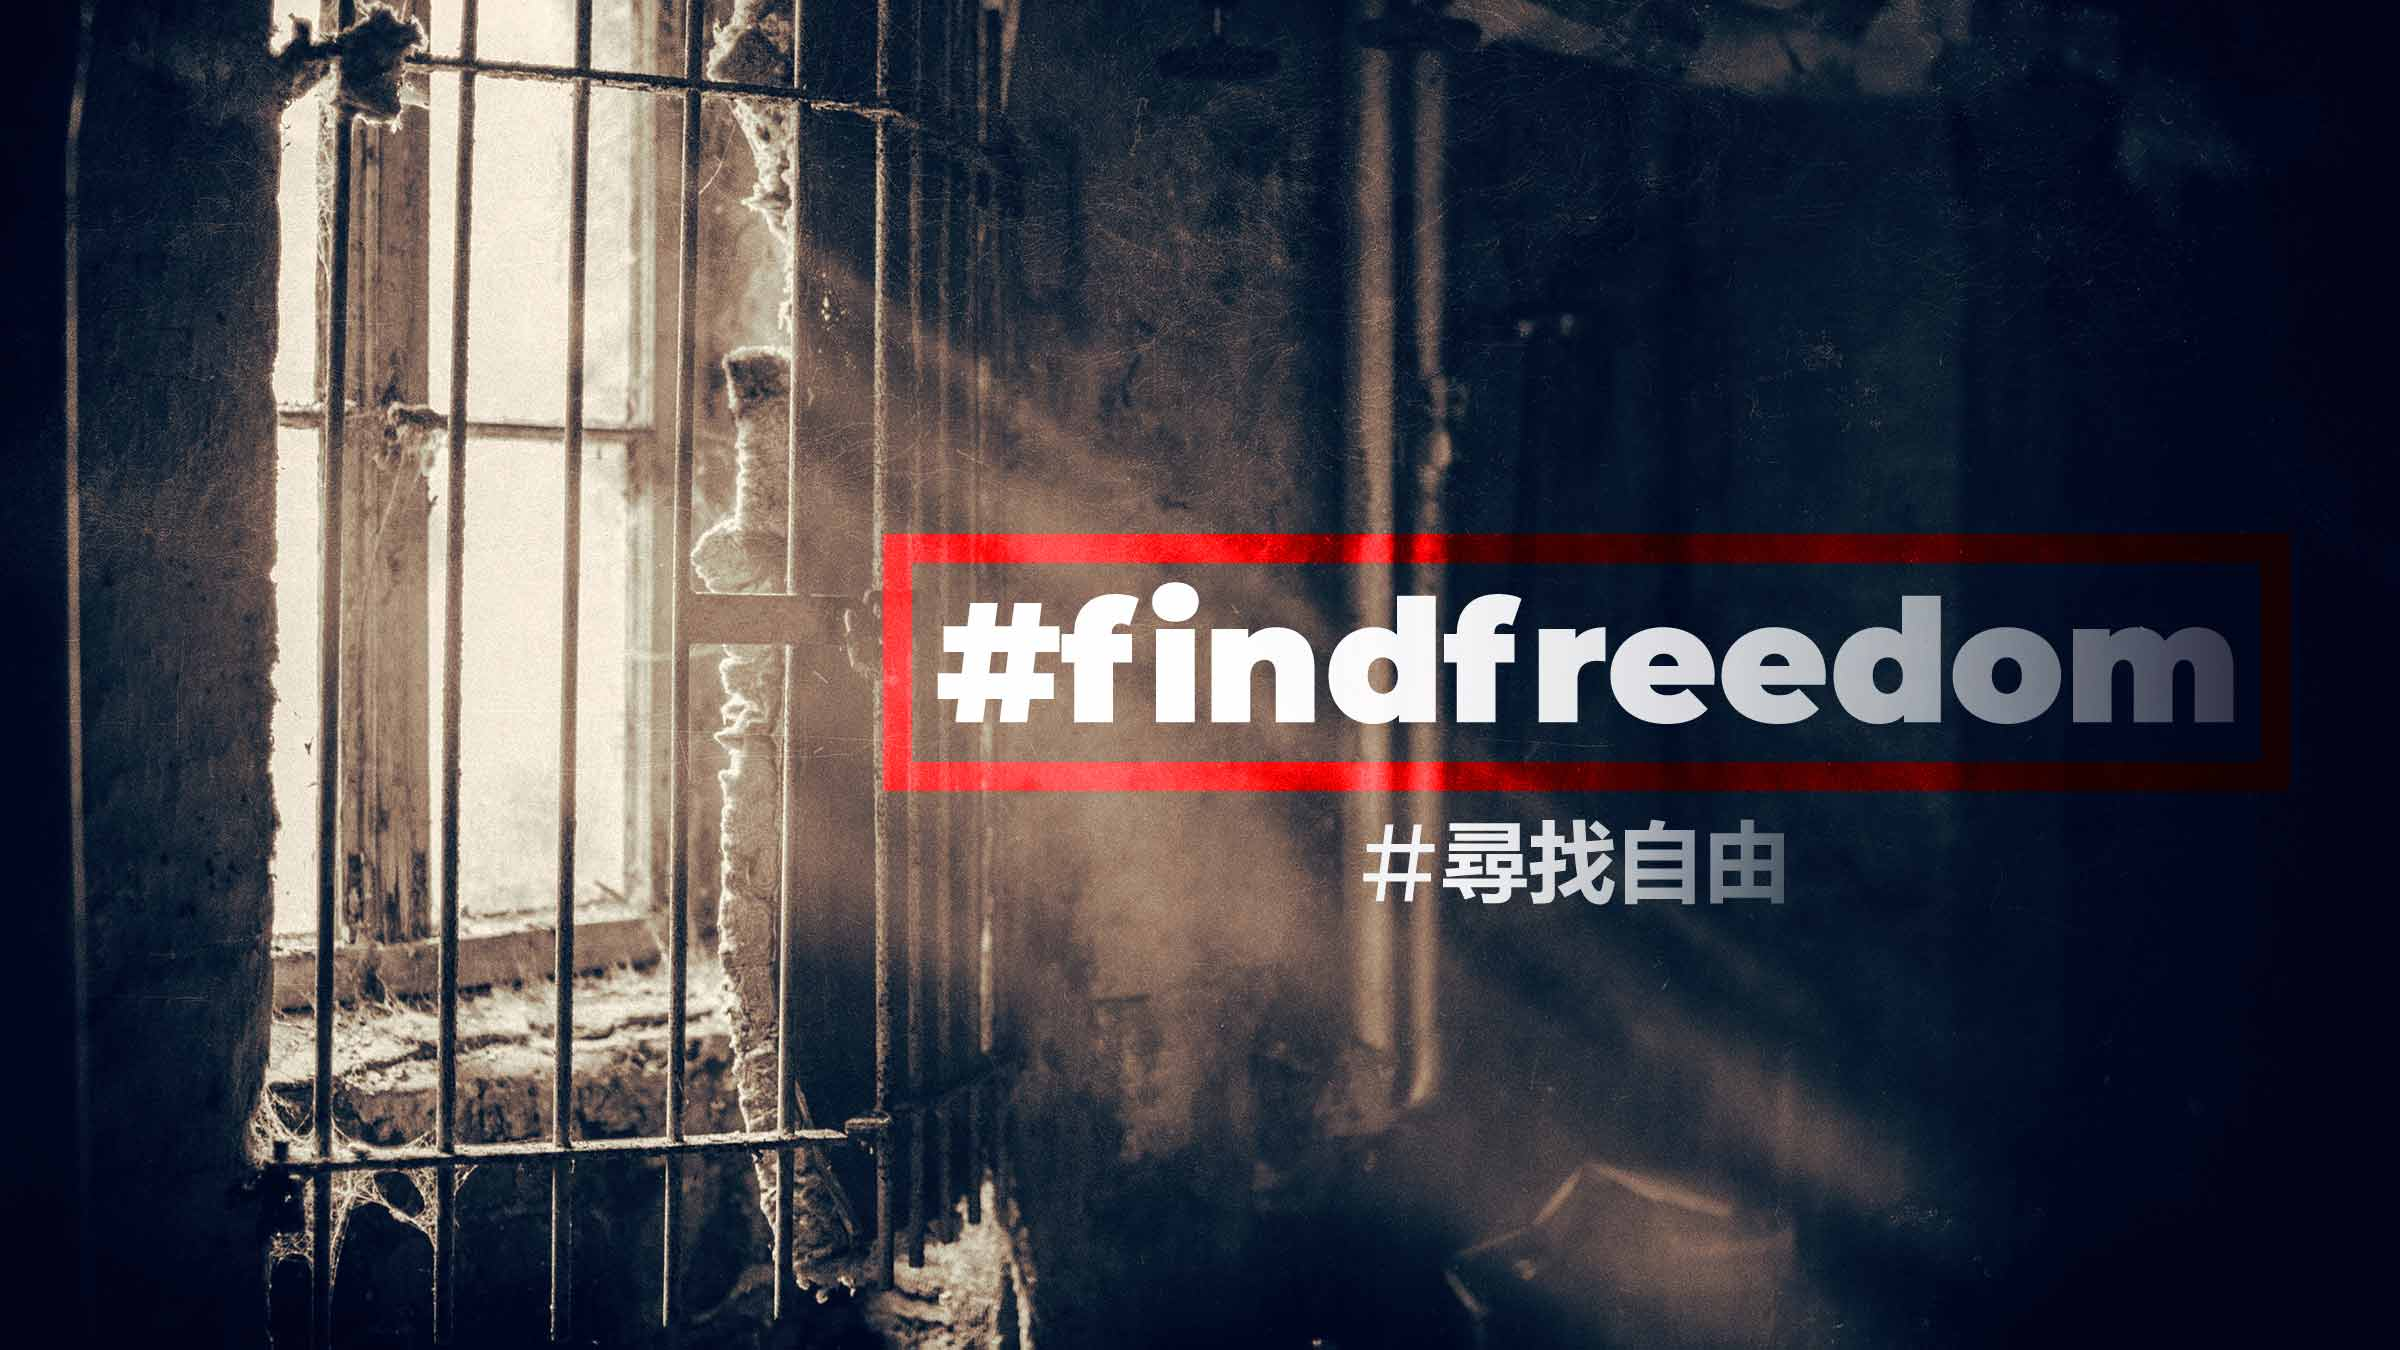 #findfreedom---Title sm